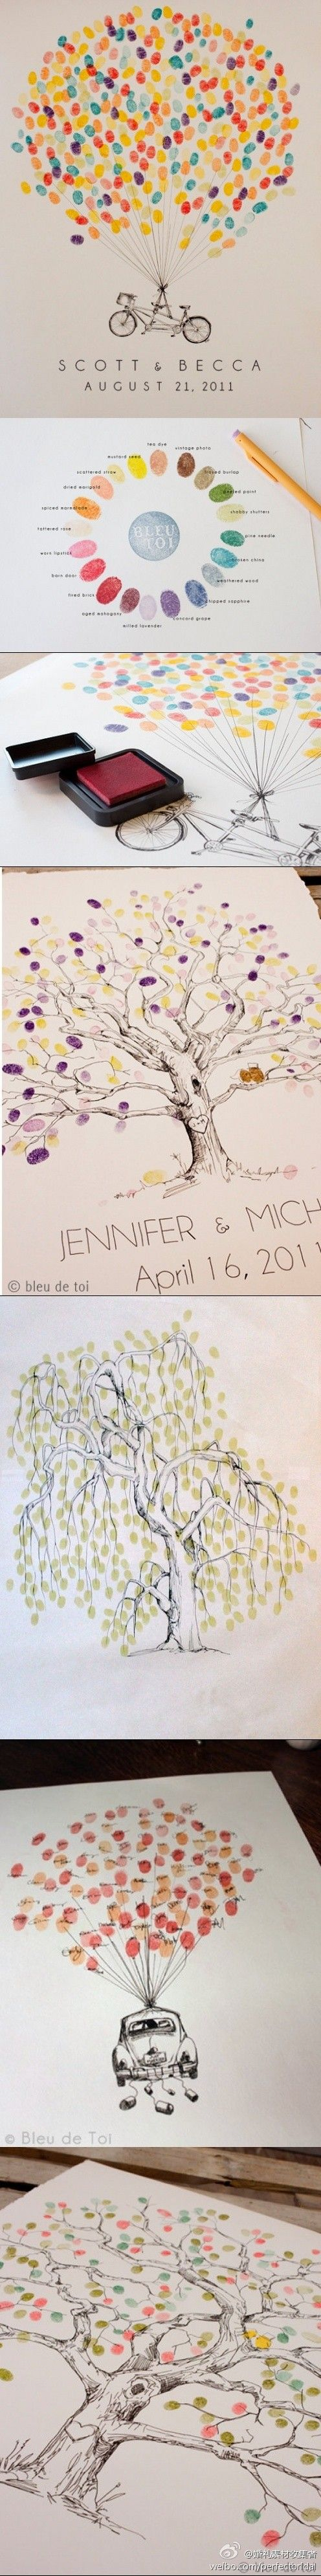 """I know this is a wedding """"guest book"""" thing, but perhaps it could also translate into a collaborative art project..."""